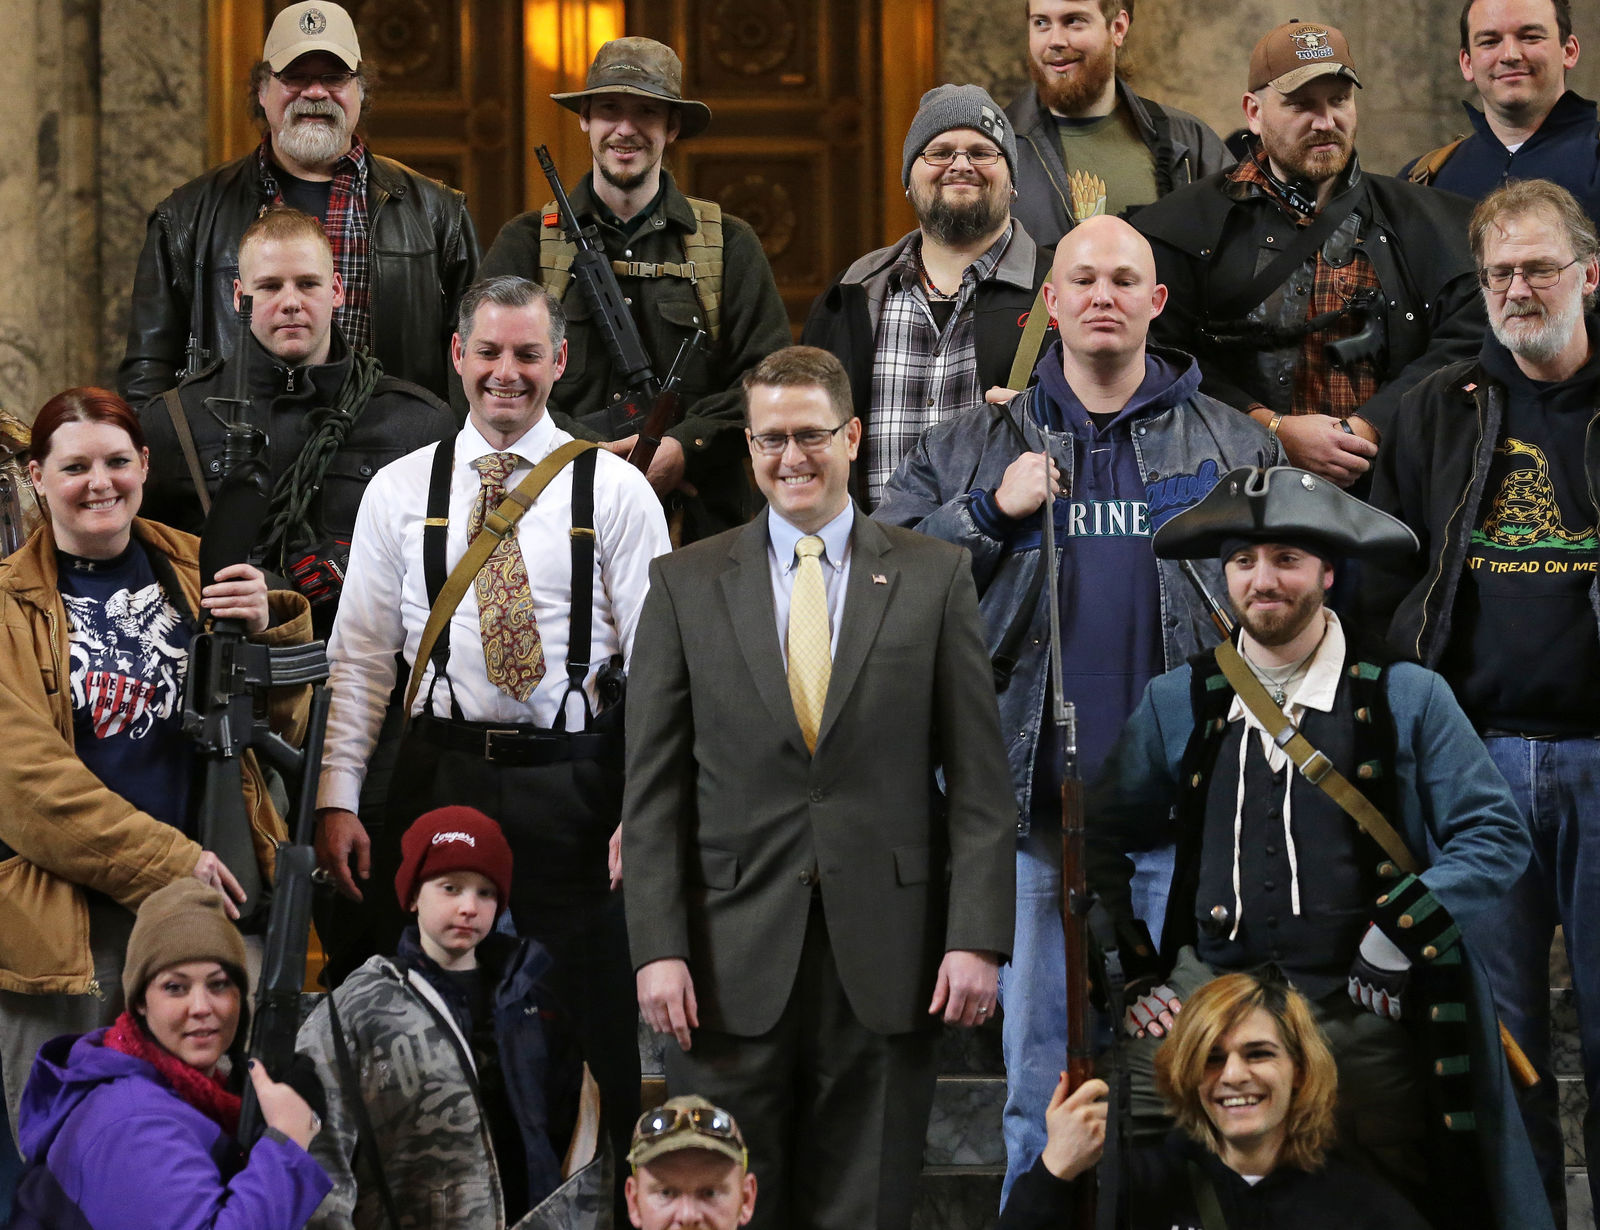 FILE - In this Jan. 15, 2015, file photo, Washington Rep. Matt Shea, R-Spokane Valley, center, poses for a group photo with gun owners inside the Capitol in Olympia, Wash., following a gun-rights rally.{ } (AP Photo/Ted S. Warren, File)